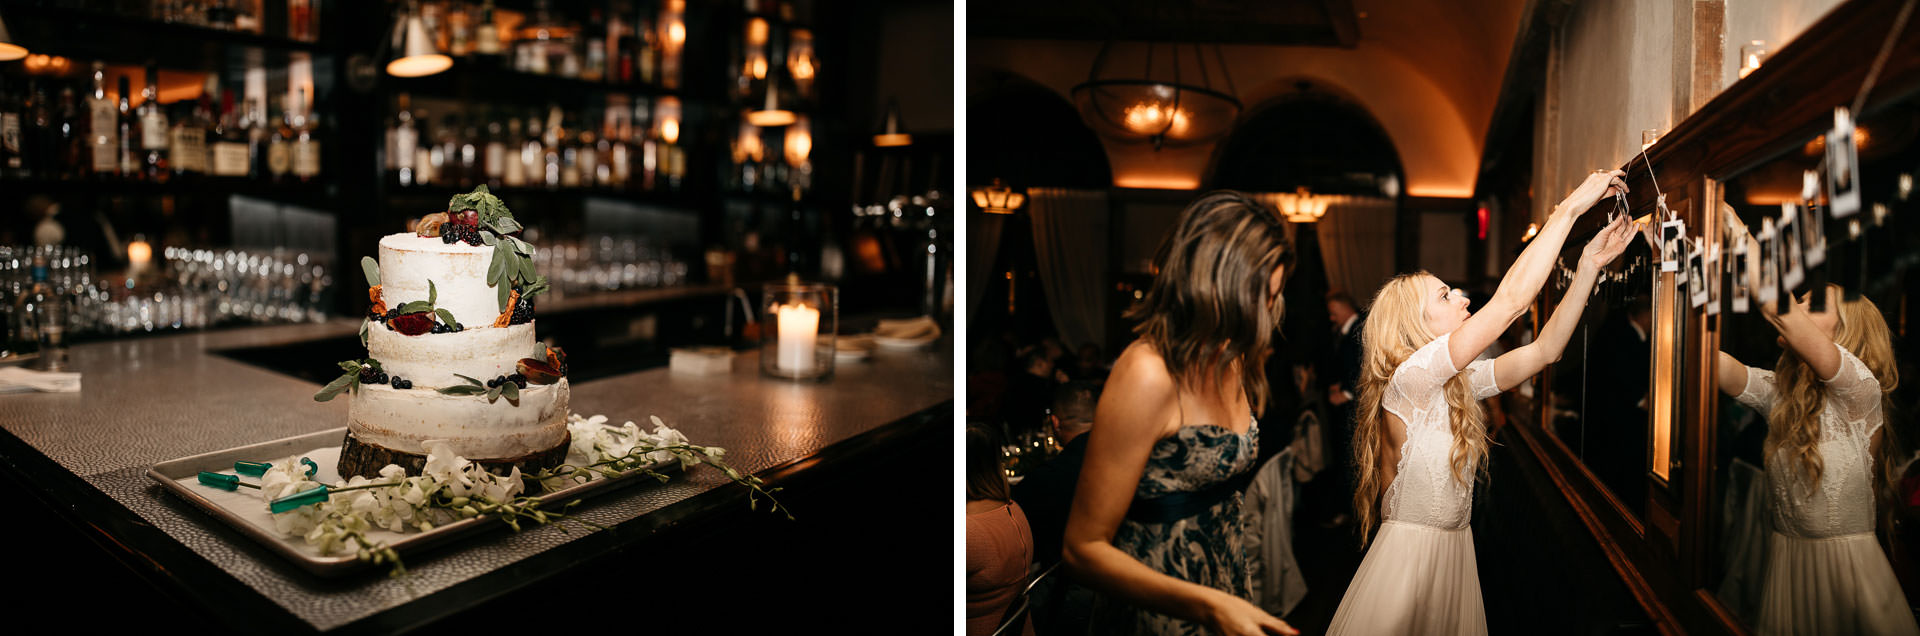 Shana & Tyler Wedding Greenwich Hotel, New York, by Jean-Laurent Gaudy